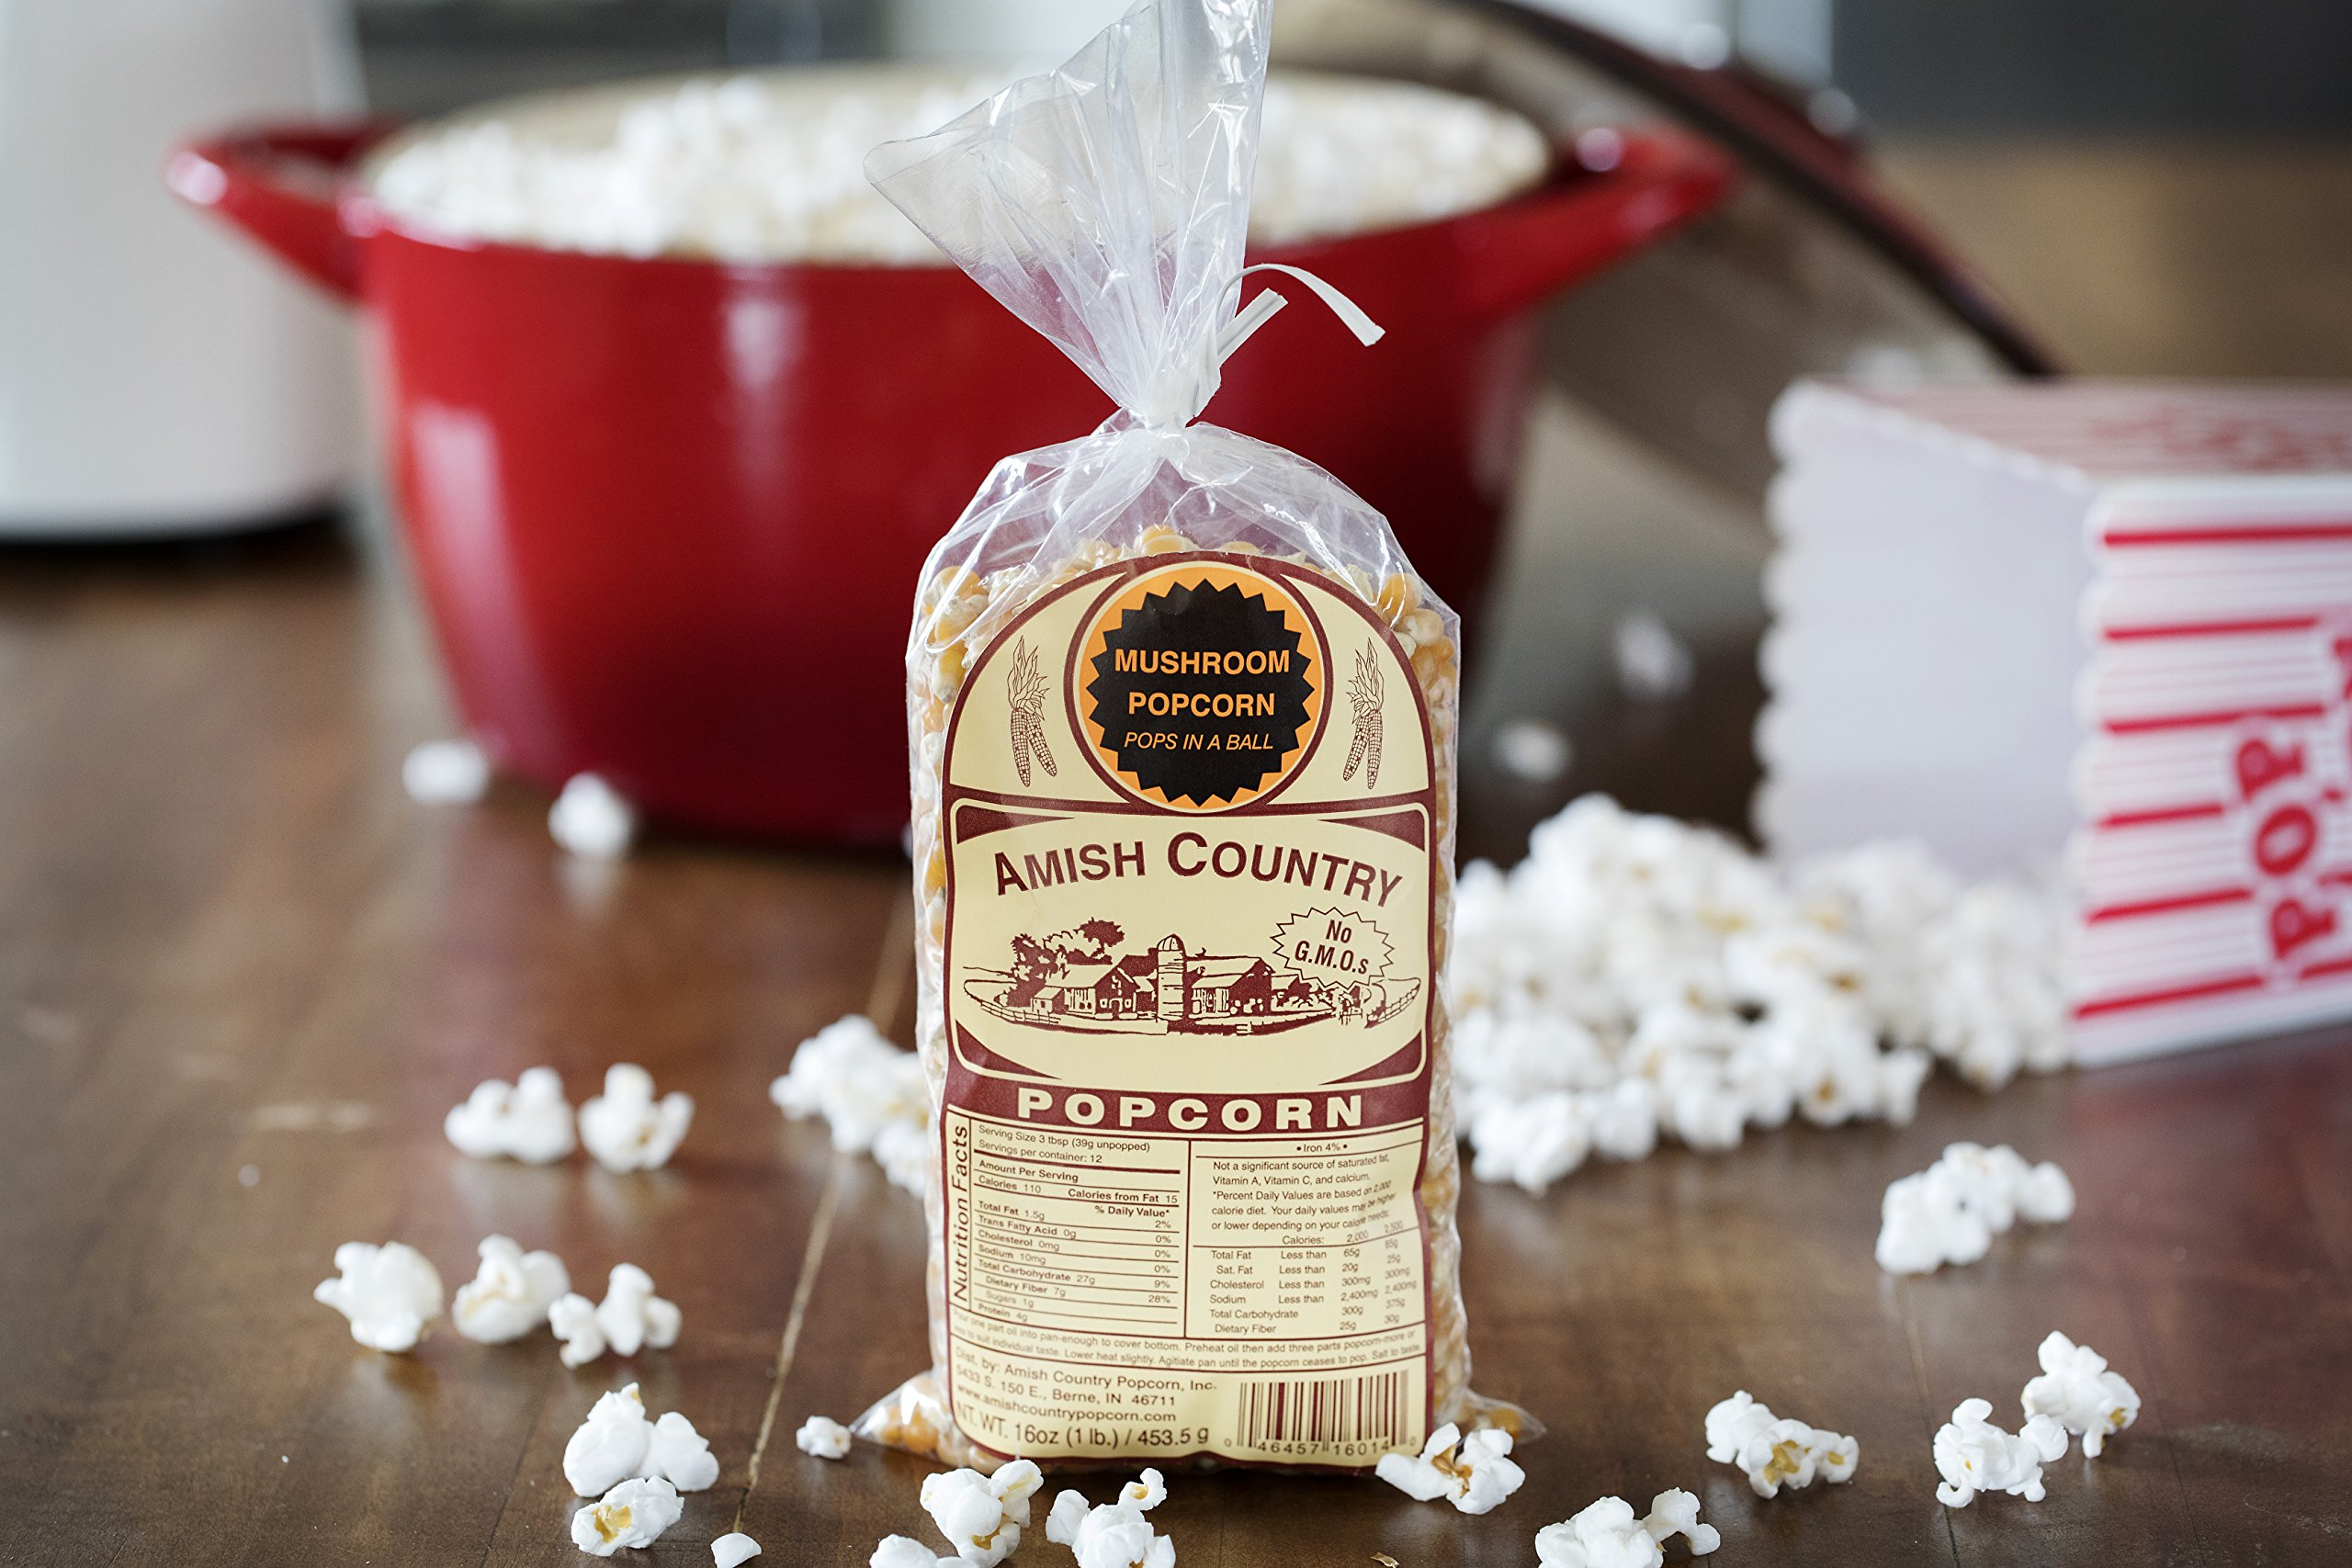 Amish Country Popcorn - Mushroom Popcorn (1 Pound Bag) Old Fashioned, Non GMO, and Gluten Free - with Recipe Guide by Amish Country Popcorn (Image #3)